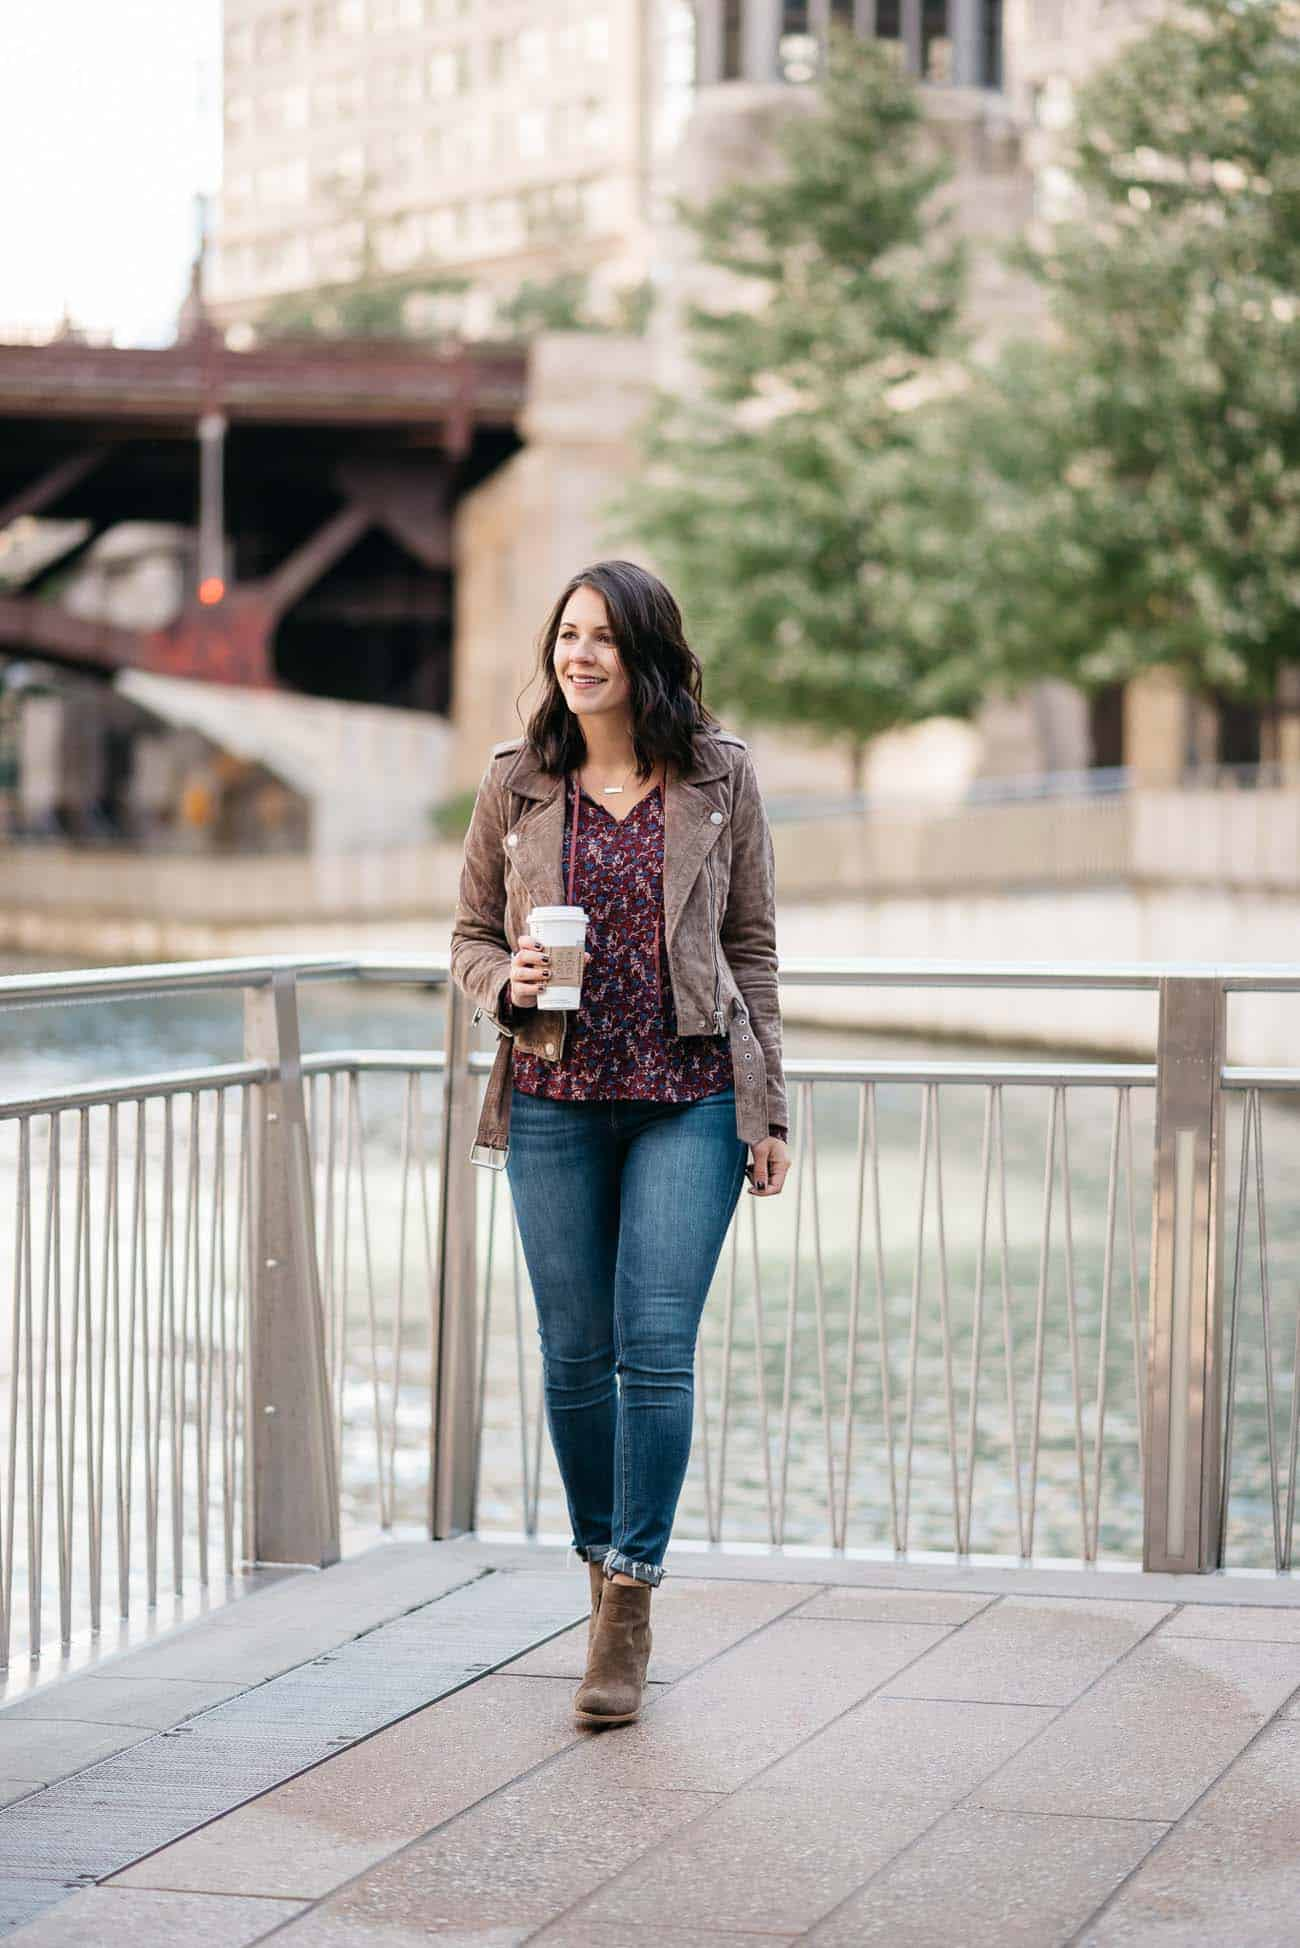 casual-outfit-ideas-moto-jacket-chicago-riverwalk-photos-fall-outfit-ideas-my-style-vita-mystylevita @mystylevita